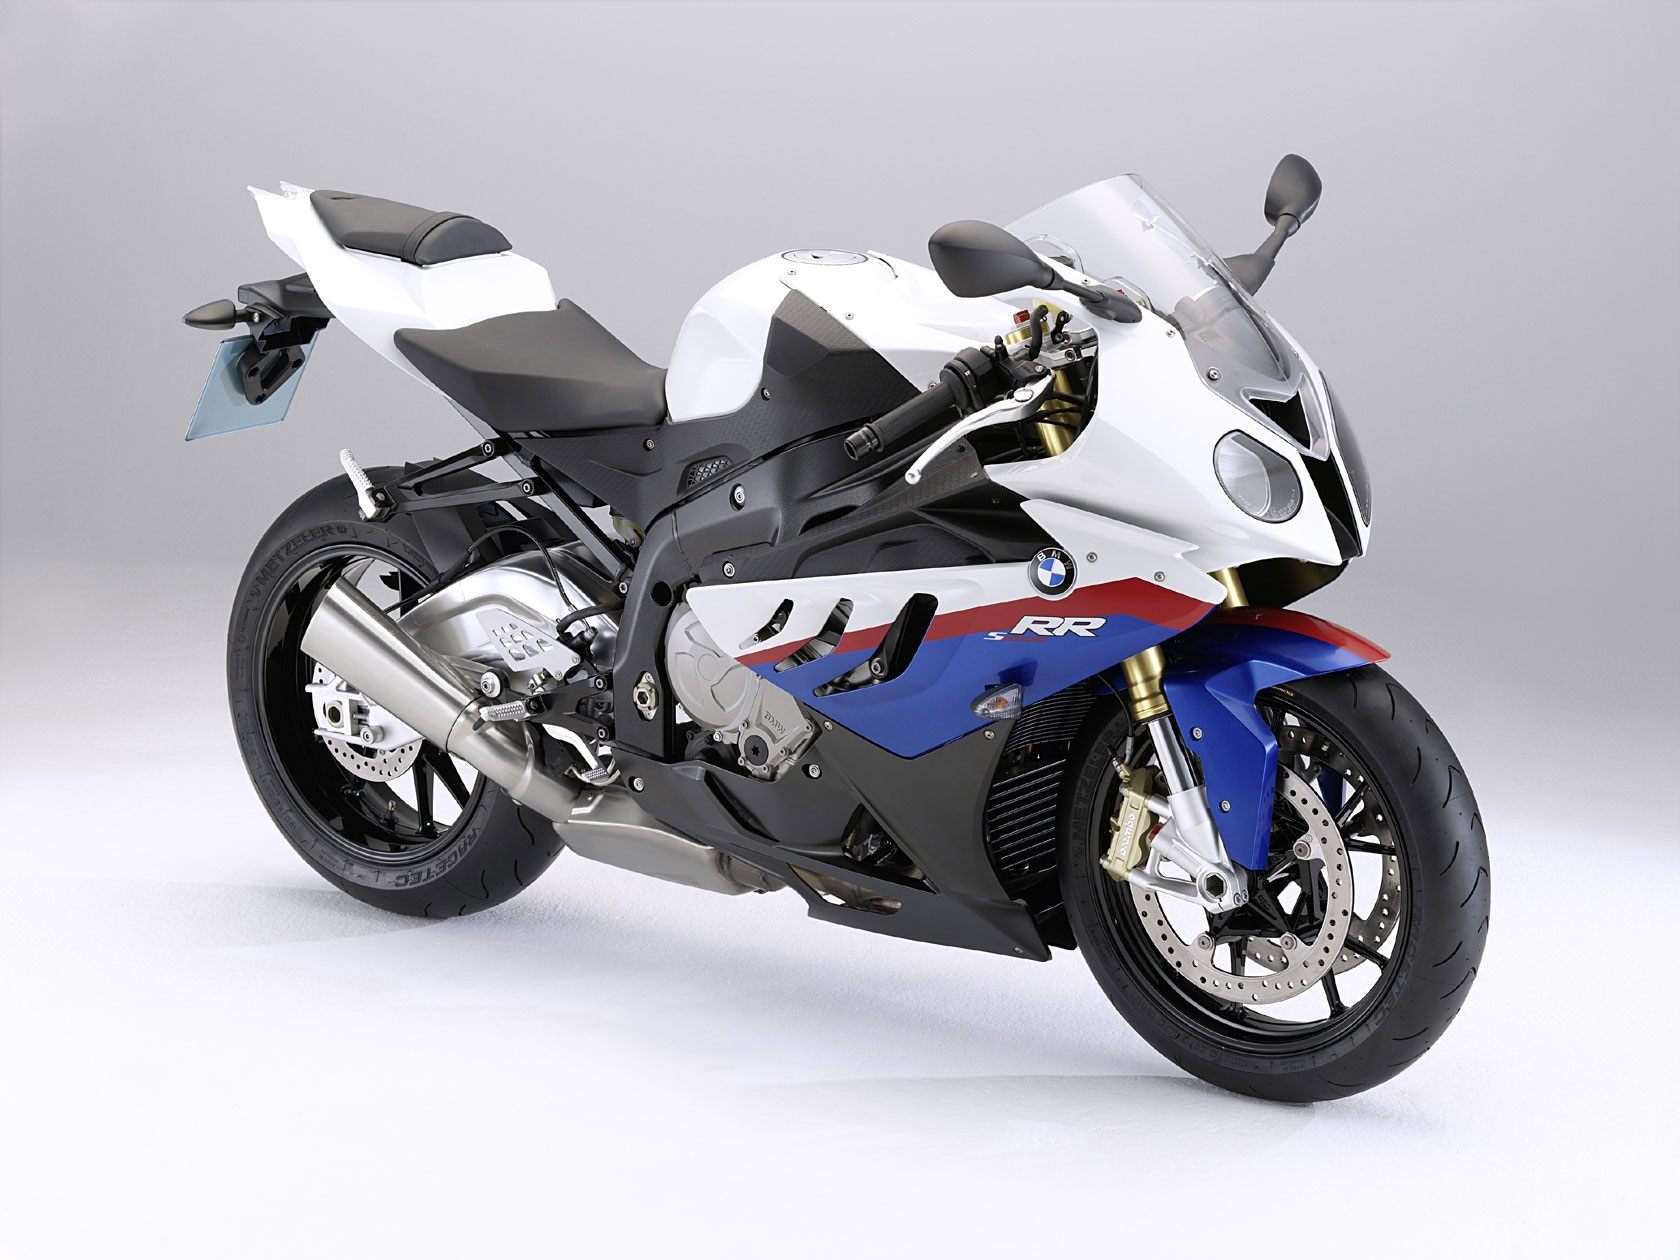 2010 BMW S1000RR 3-4 Angled View